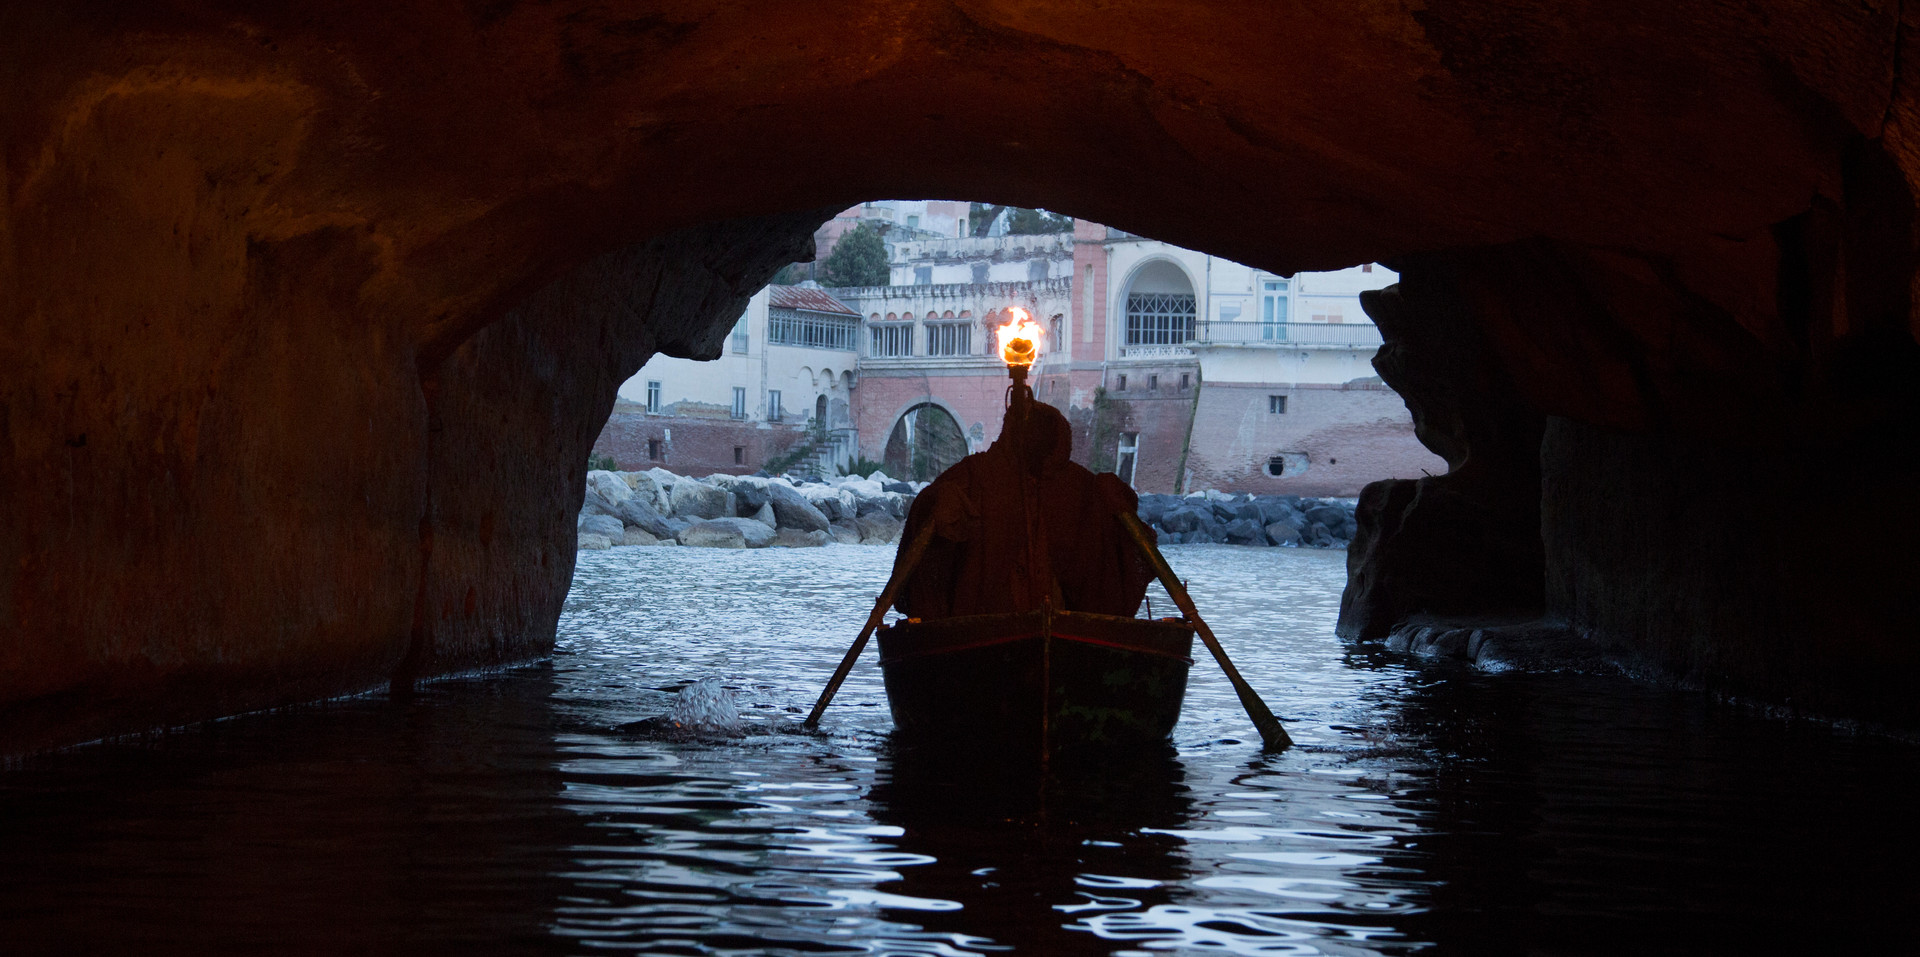 Posillipo - Entering the undergrounds